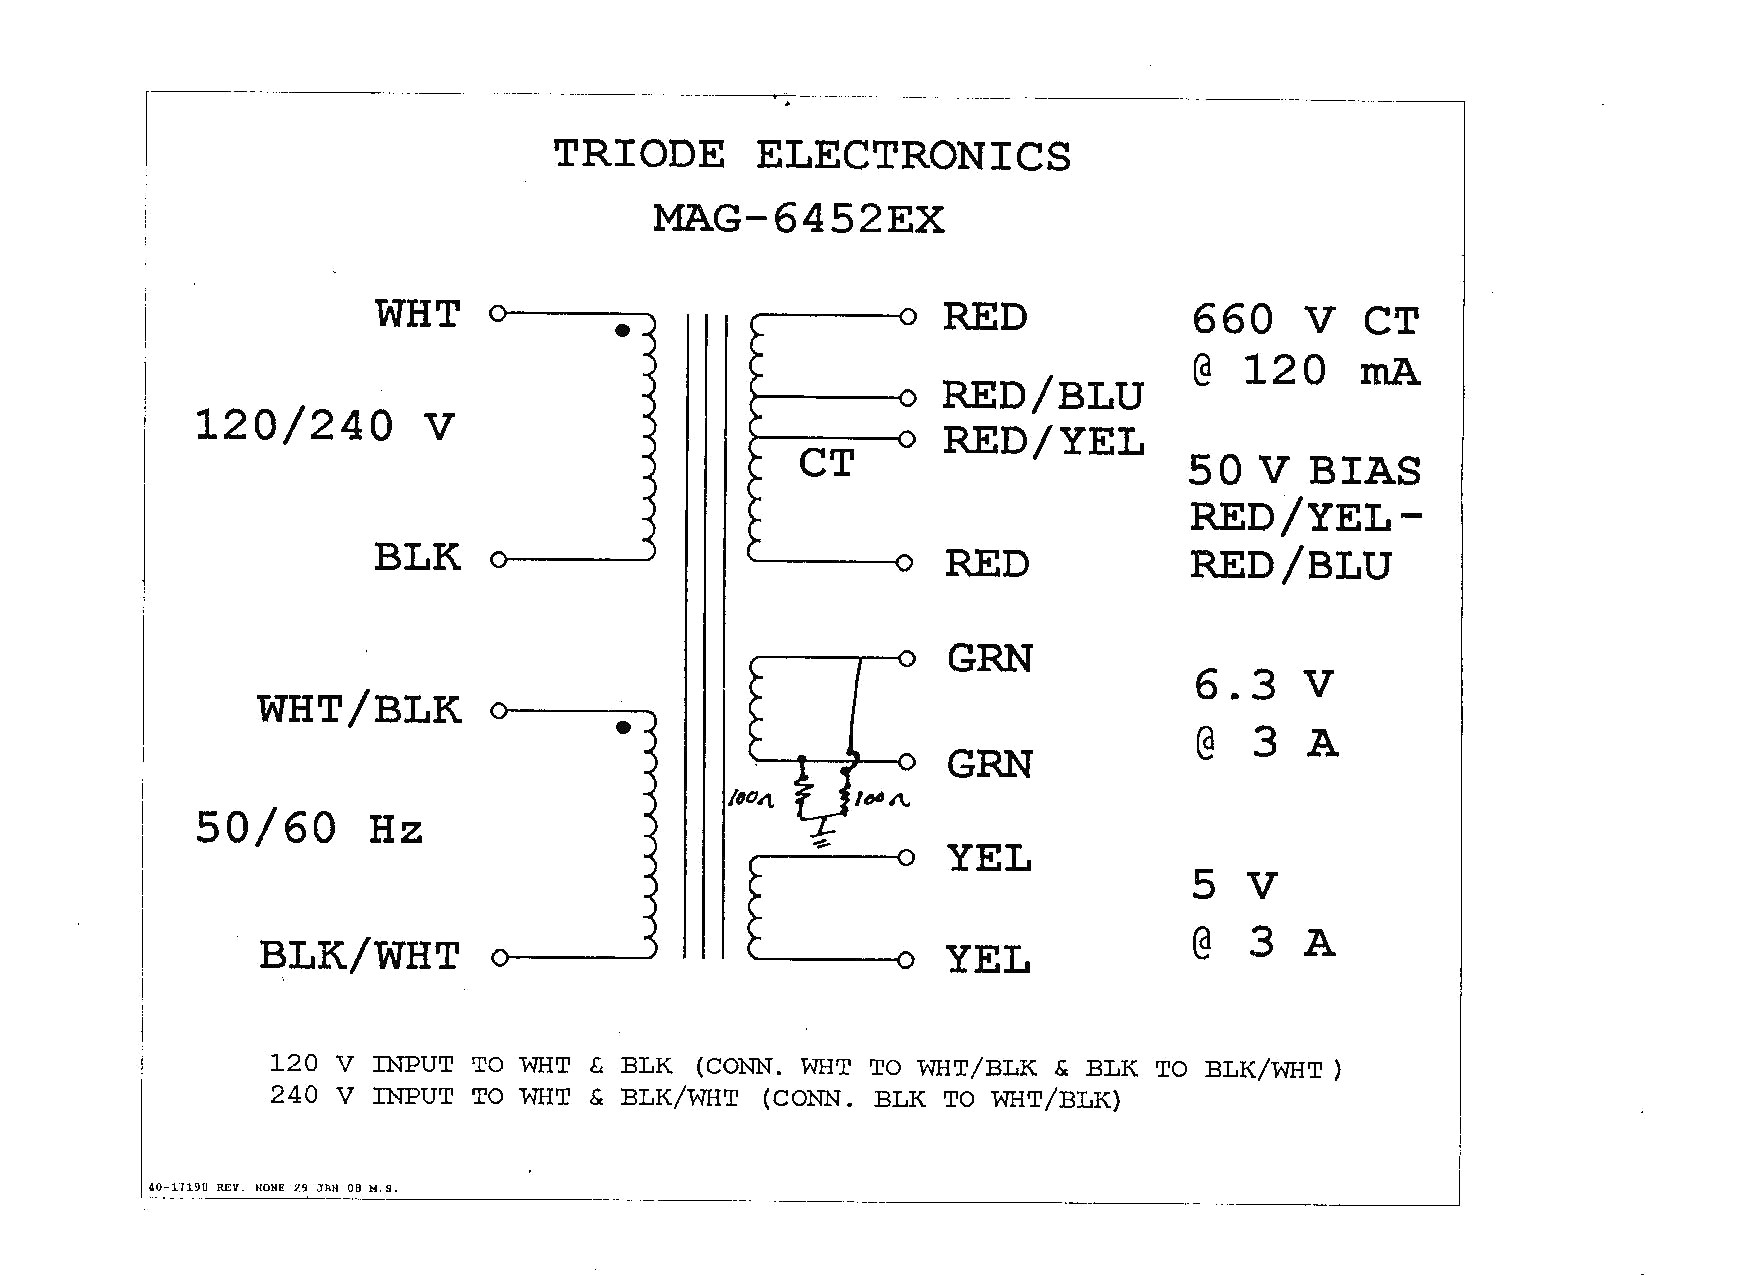 buck boost transformer wiring diagram Collection-3 Phase Buck Boost Transformer Wiring Diagram Buck Boost Transformer Wiring Diagram Free Diagrams Fancy 7-f